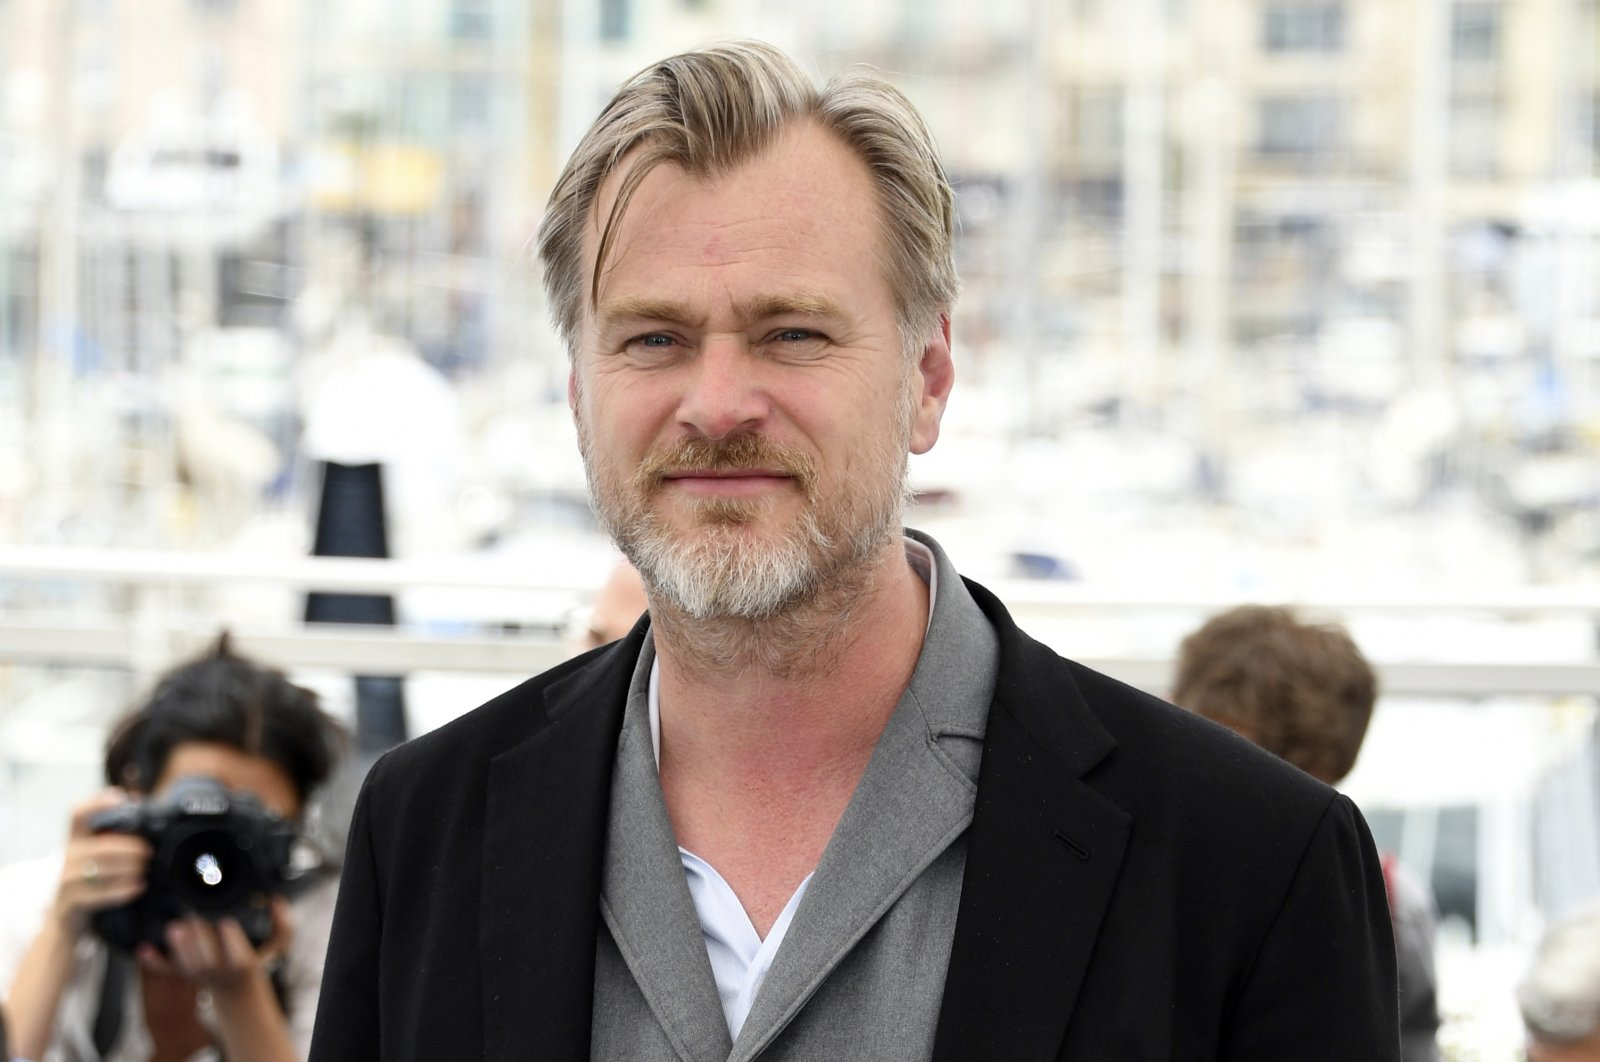 Director Christopher Nolan poses during a photo shoot at the 71st international film festival, Cannes, southern France on May 12, 2018. (Photo by Arthur Mola/Invision/AP)